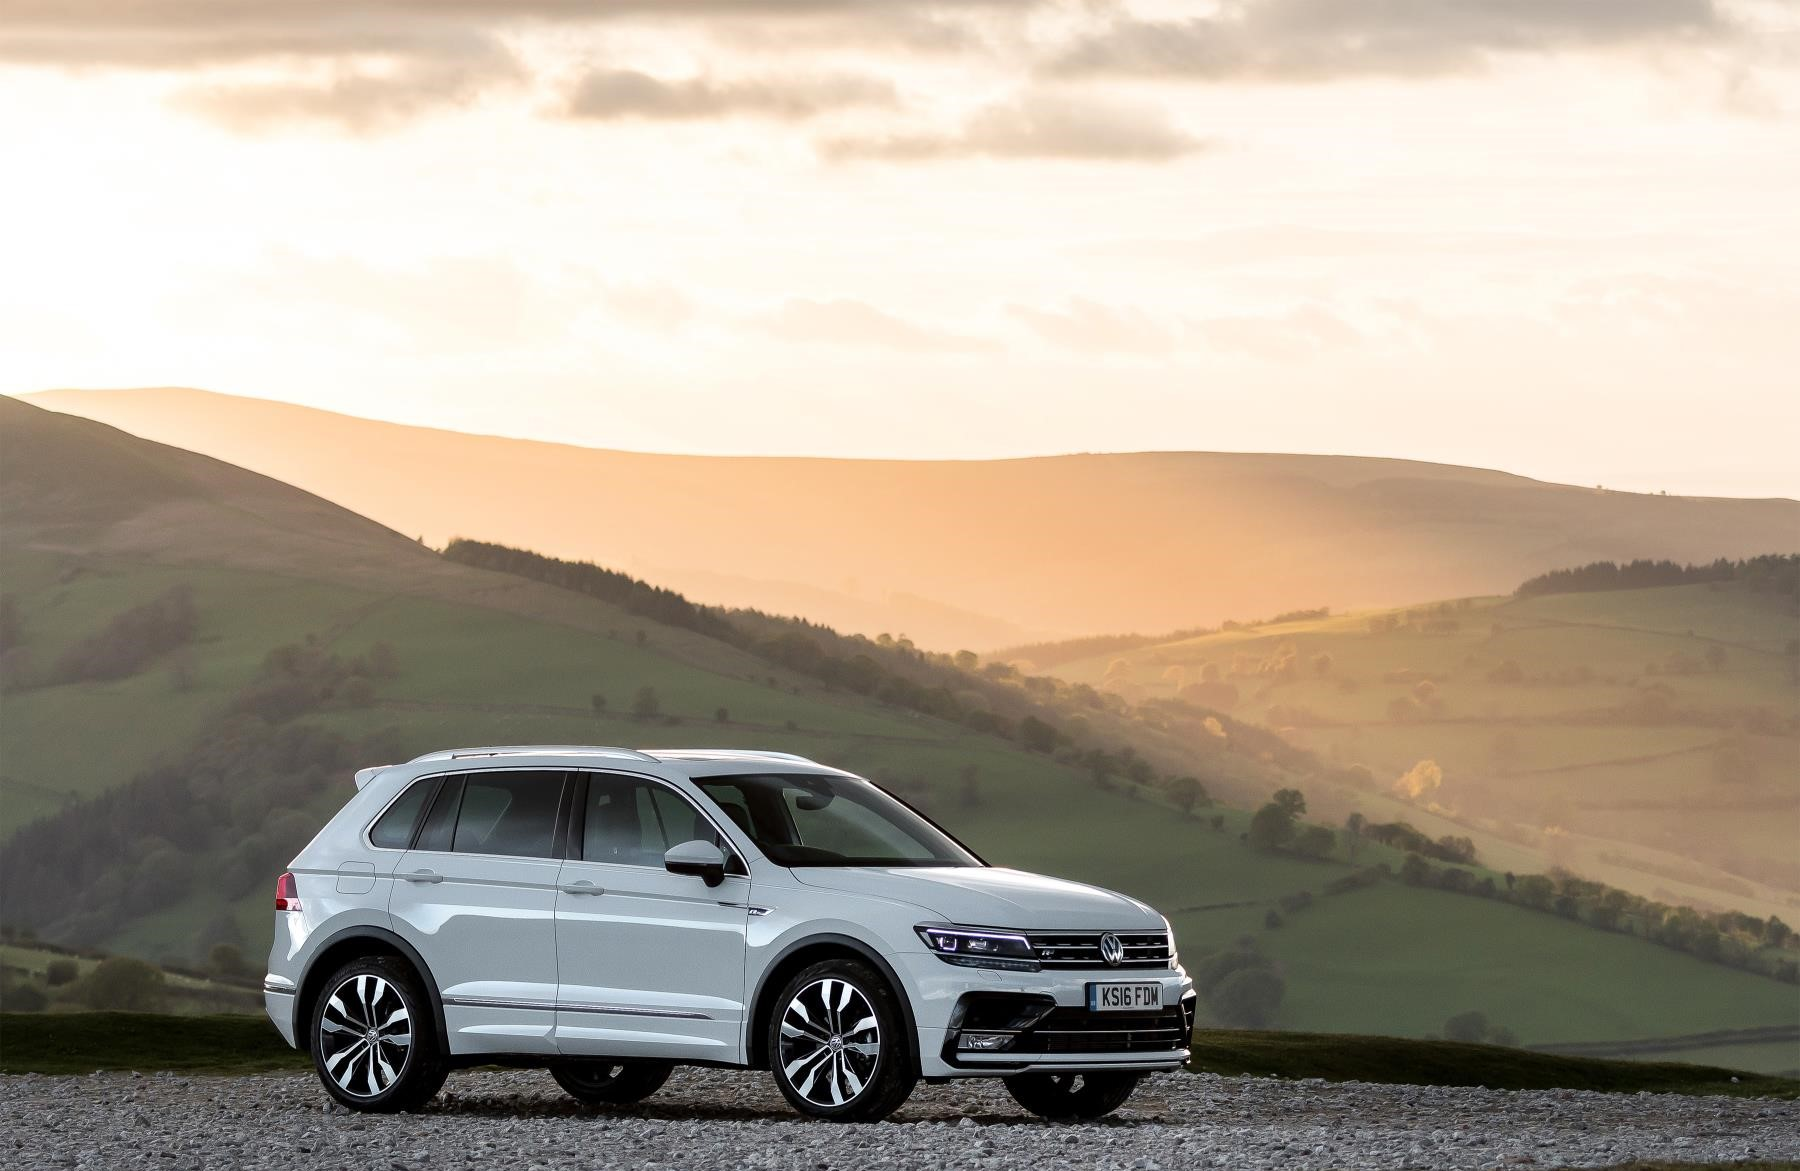 Tiguan side view in white